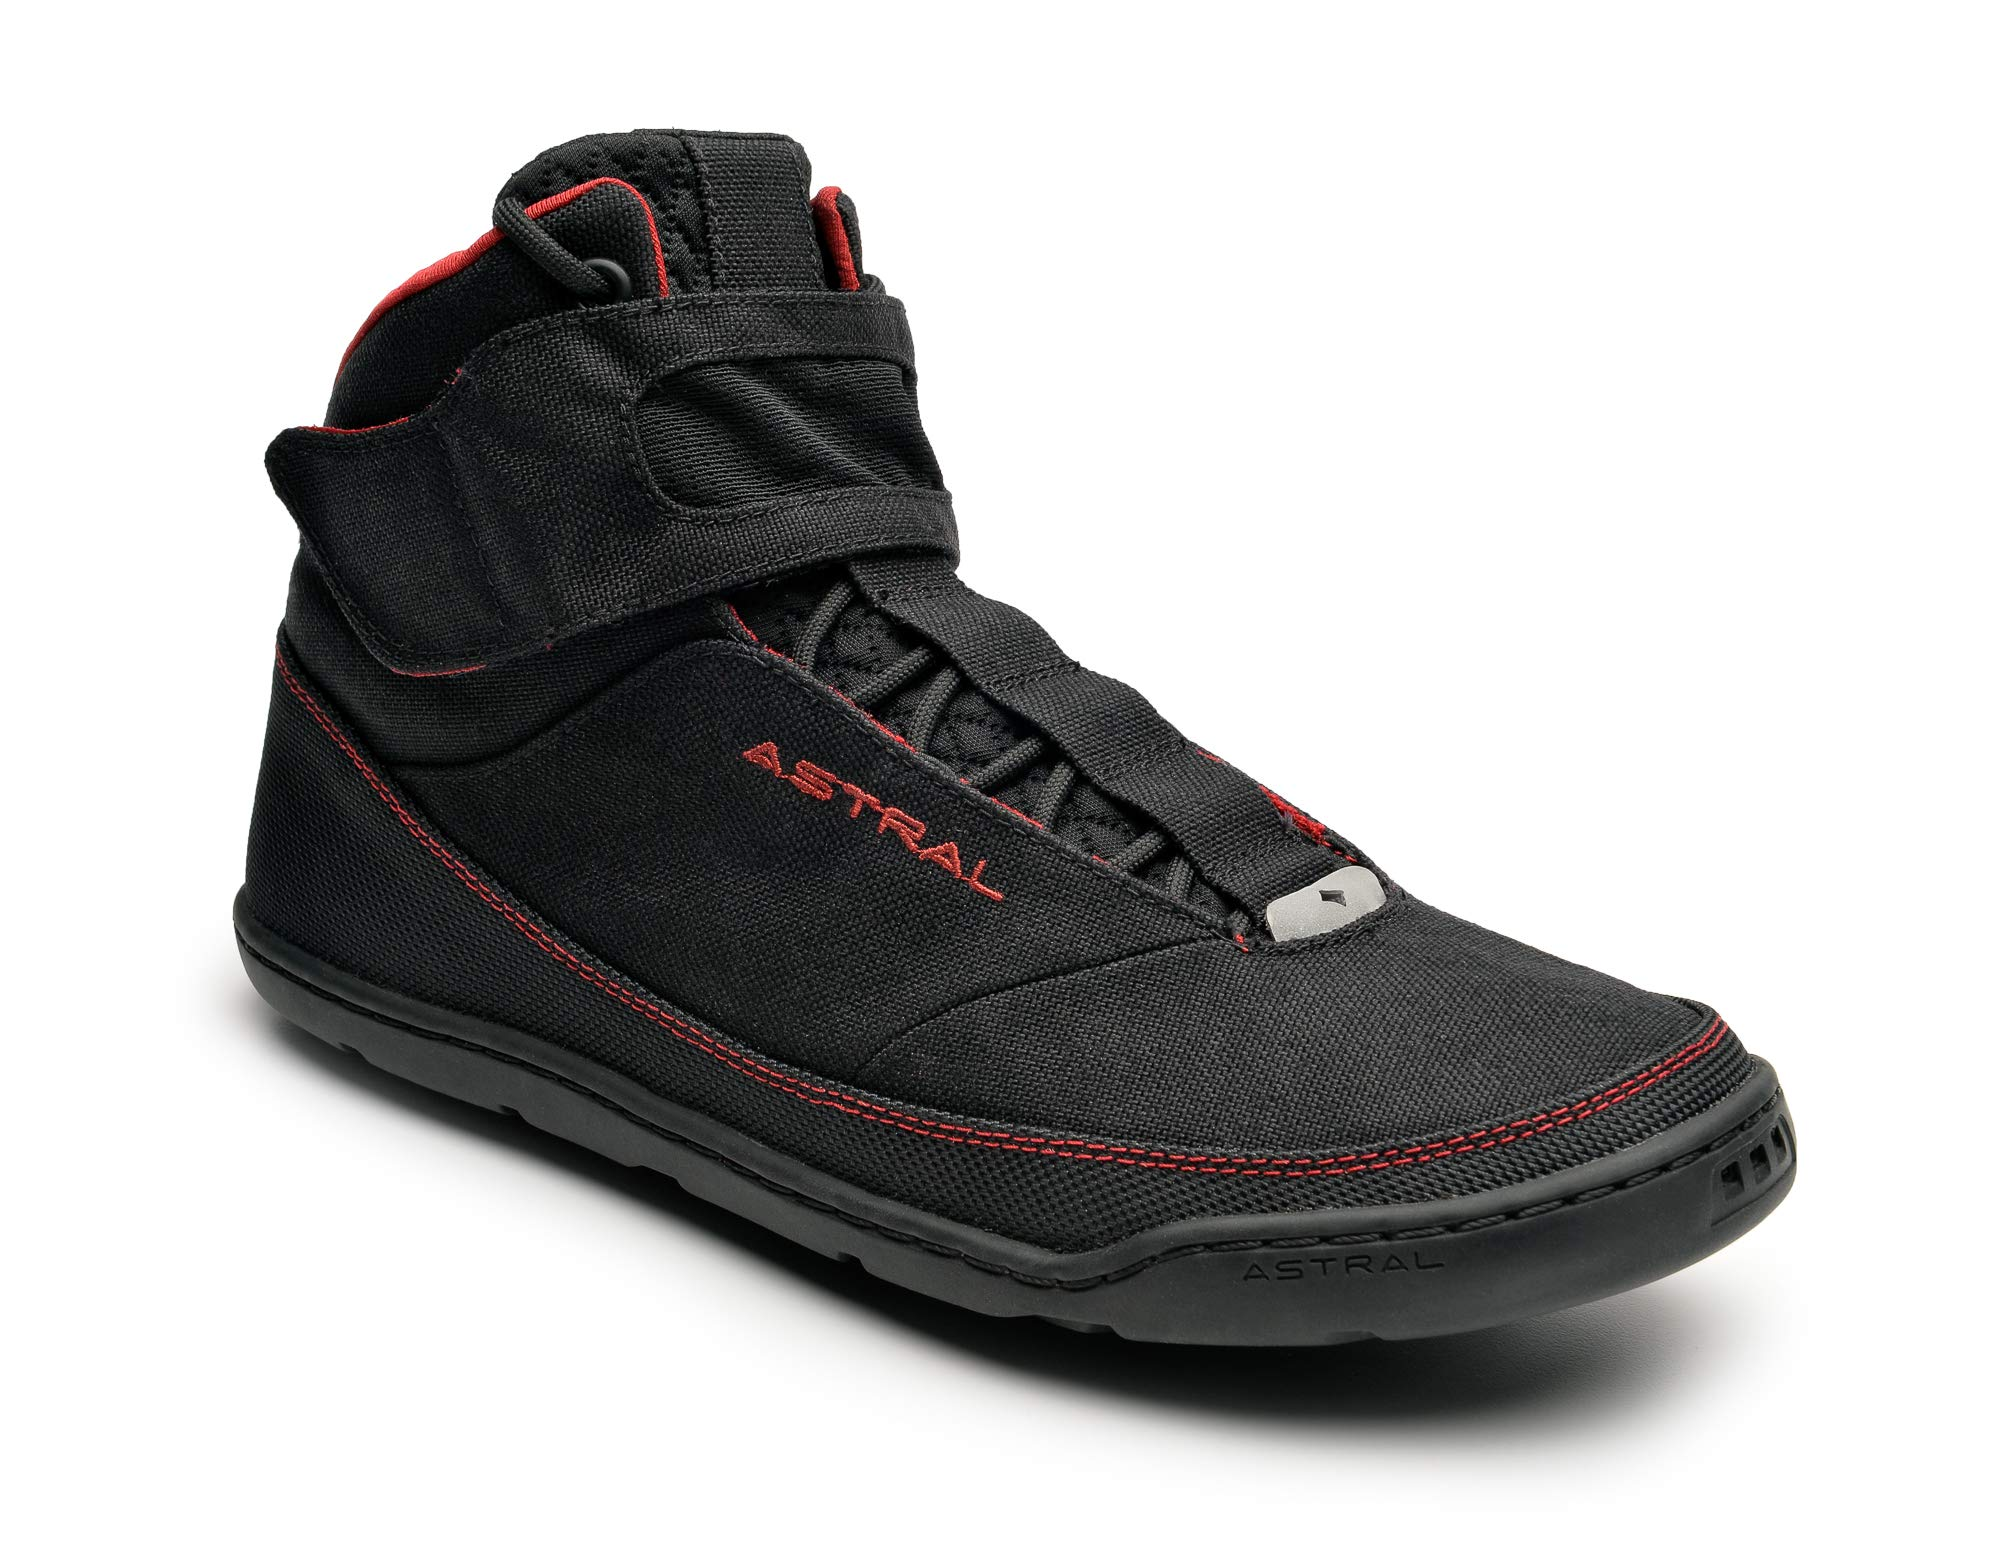 Astral Hiyak Outdoor Minimalist Boots, Insulated and Quick Drying, Made for Water and Boat, Men's 7 M US, Women's 8 M US